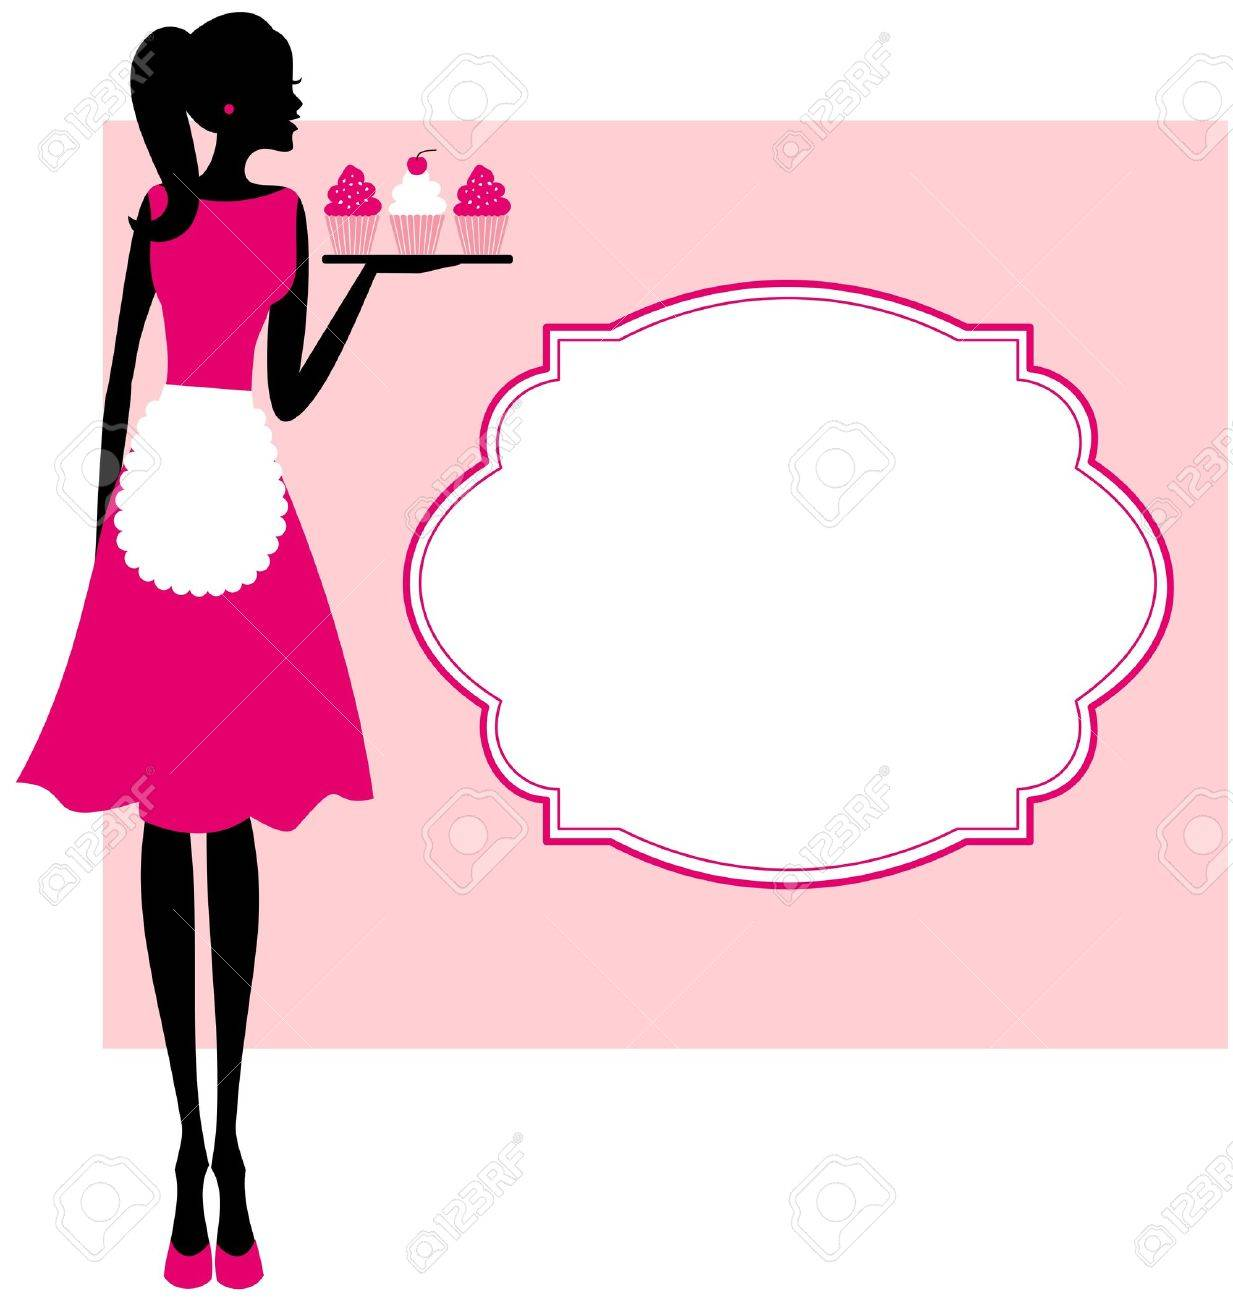 Illustration of a cute retro girl holding a tray with cupcakes and a frame against pink background Stock Vector - 13067793